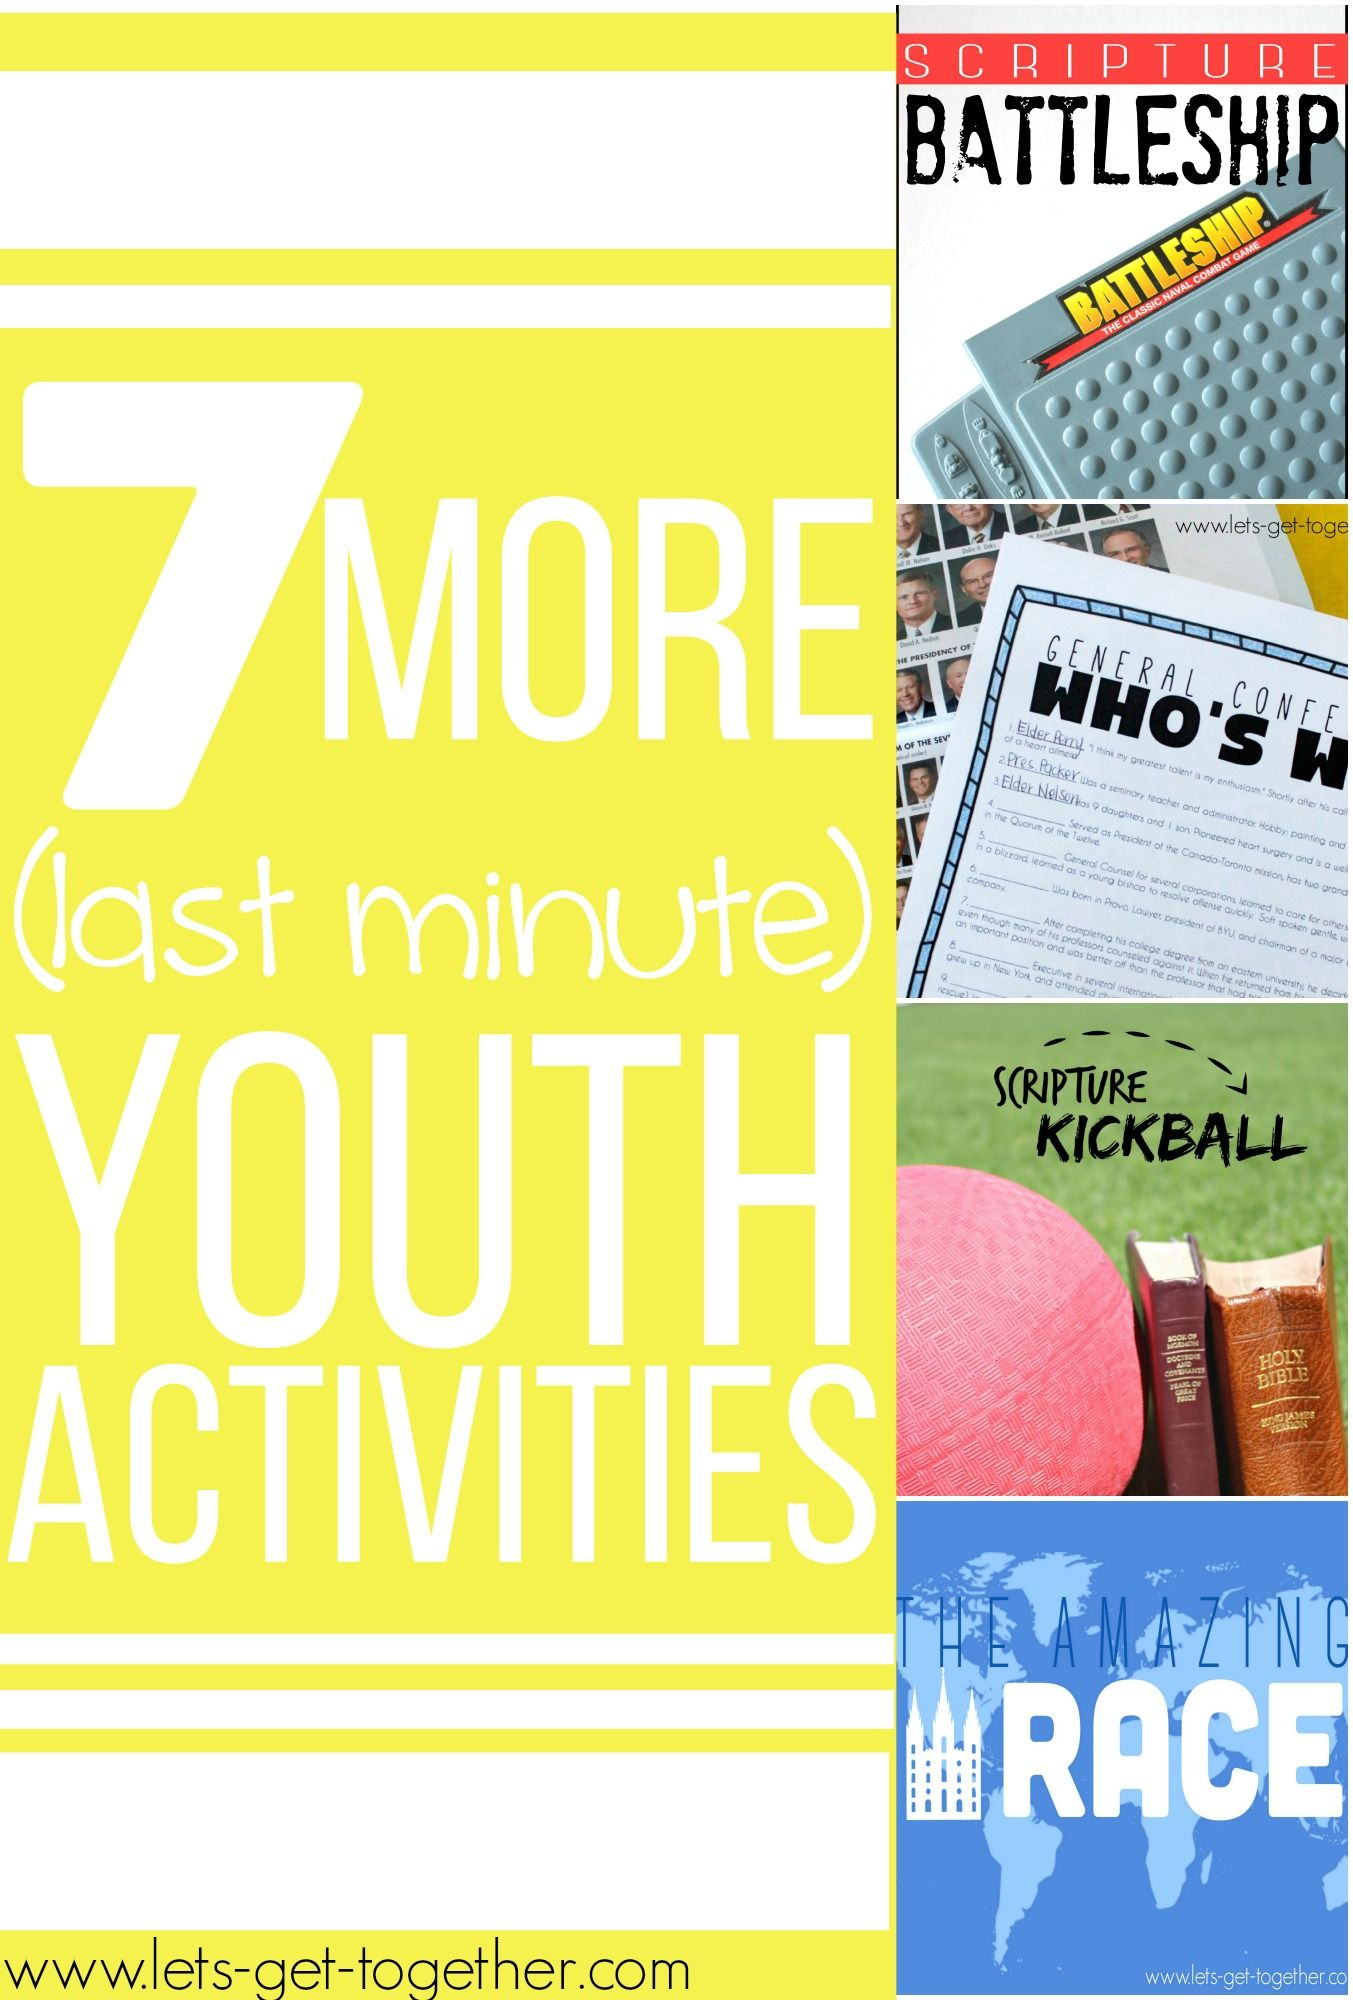 7 More Last Minute Youth Activities